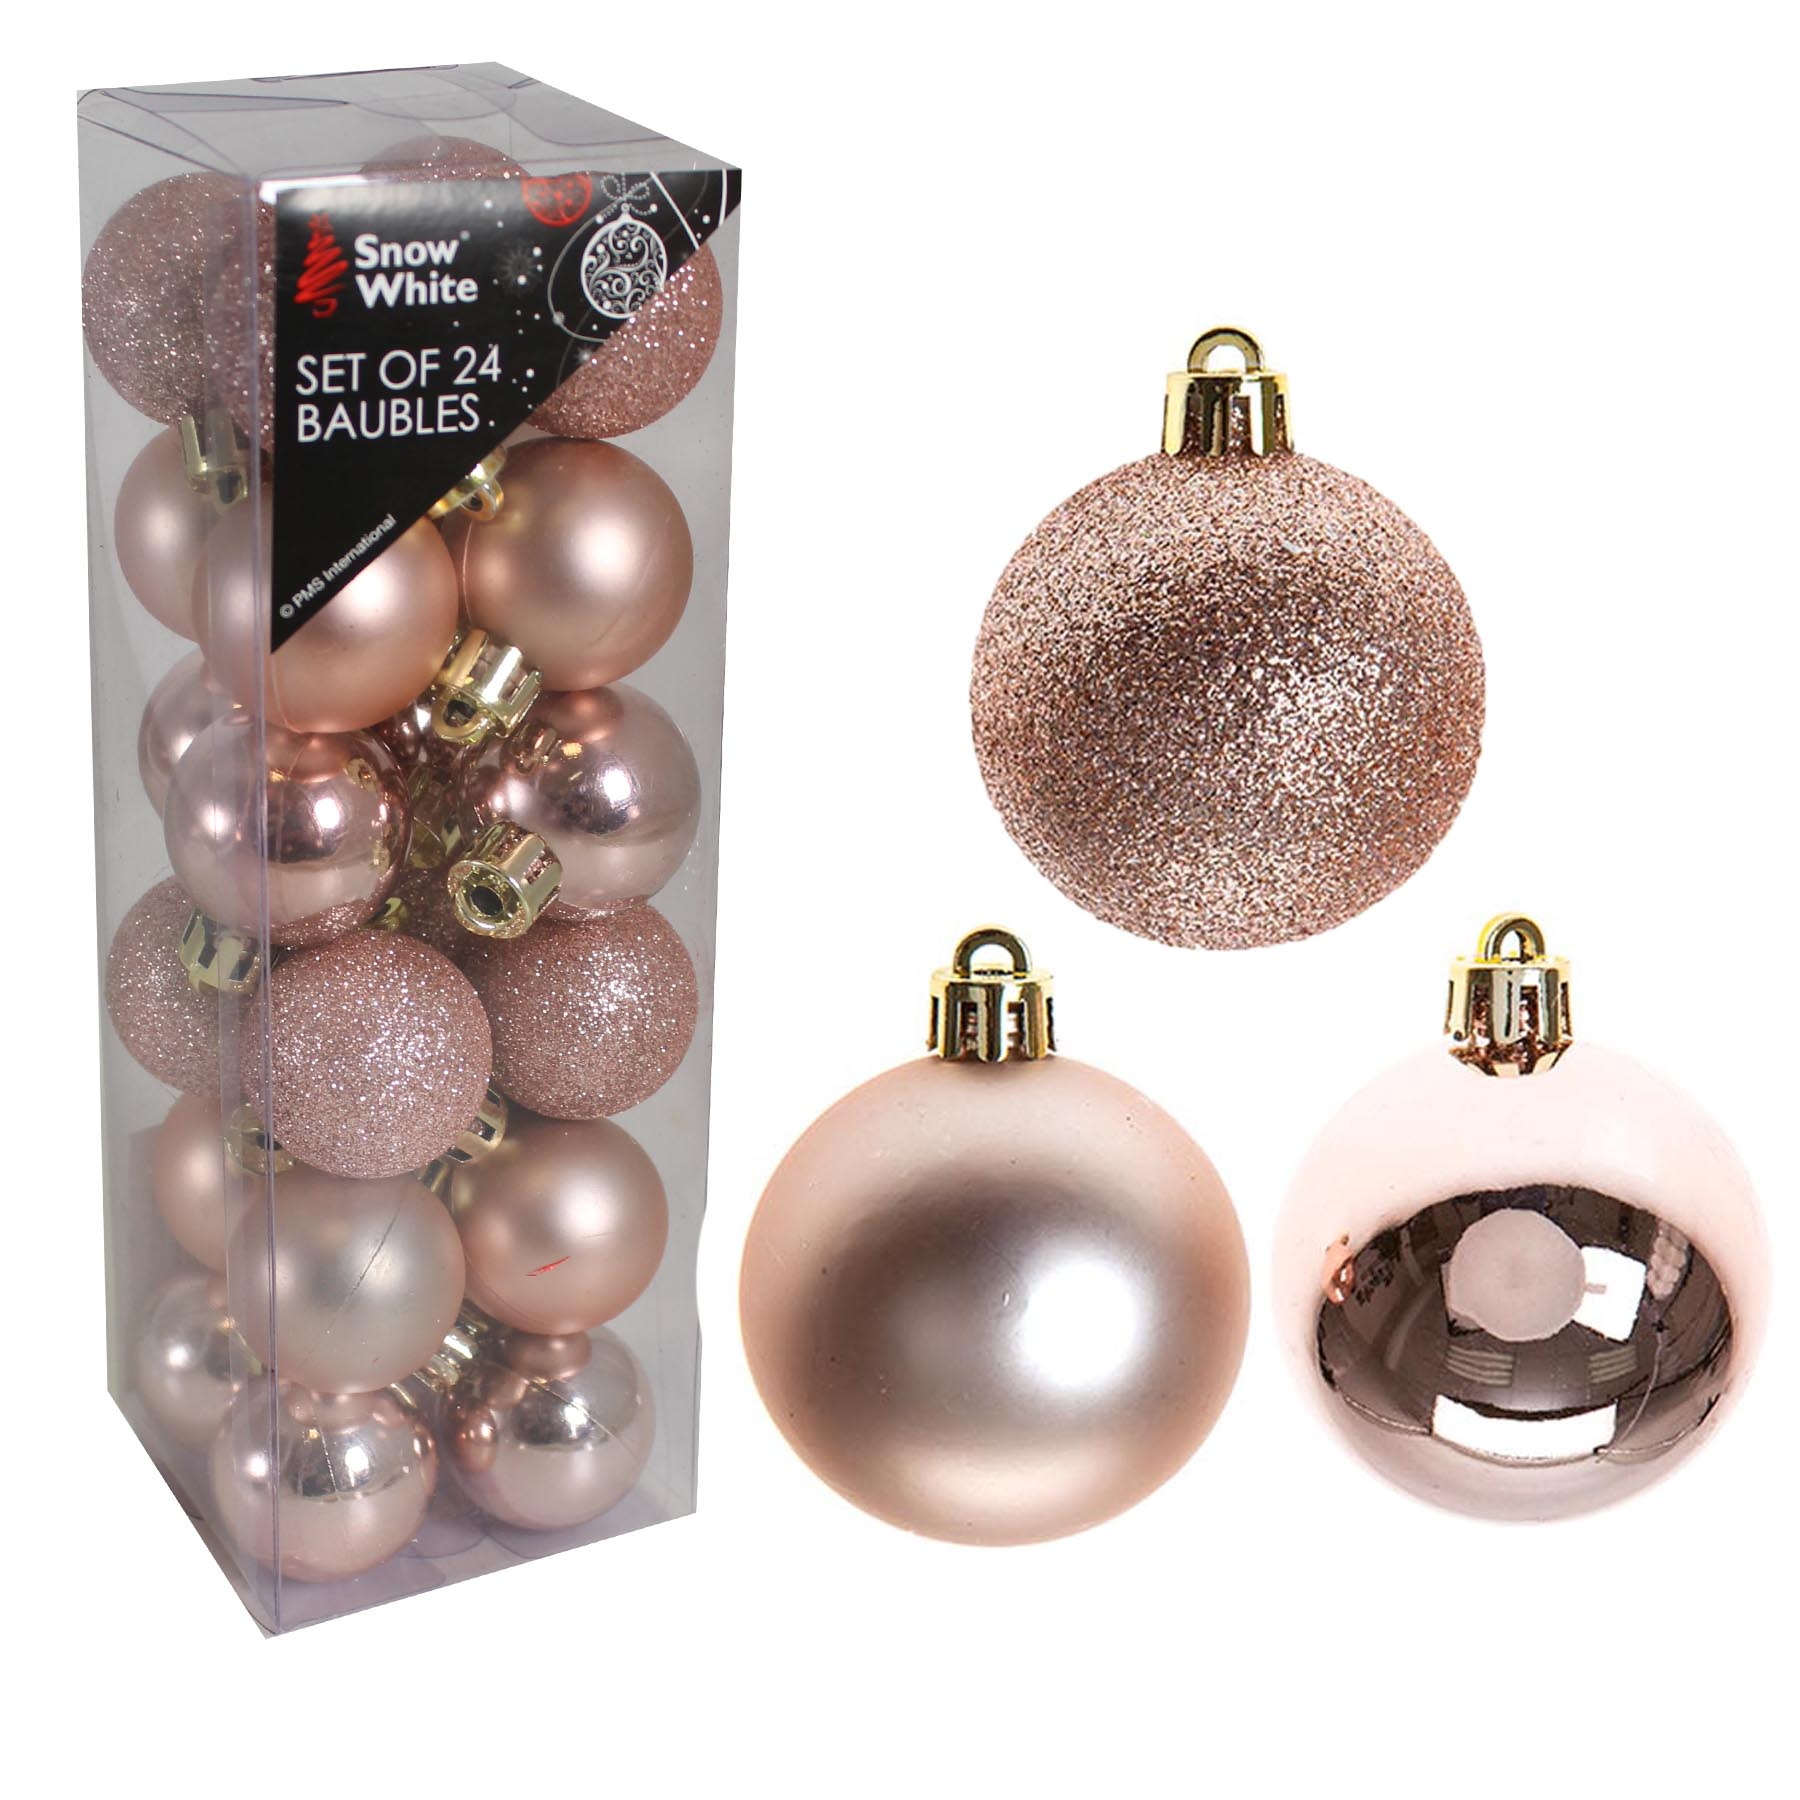 Rose Gold And Silver Christmas Tree Decorations.Details About Snow White Shatterproof Christmas Tree Decoration 24 Pk 30mm Baubles Rose Gold